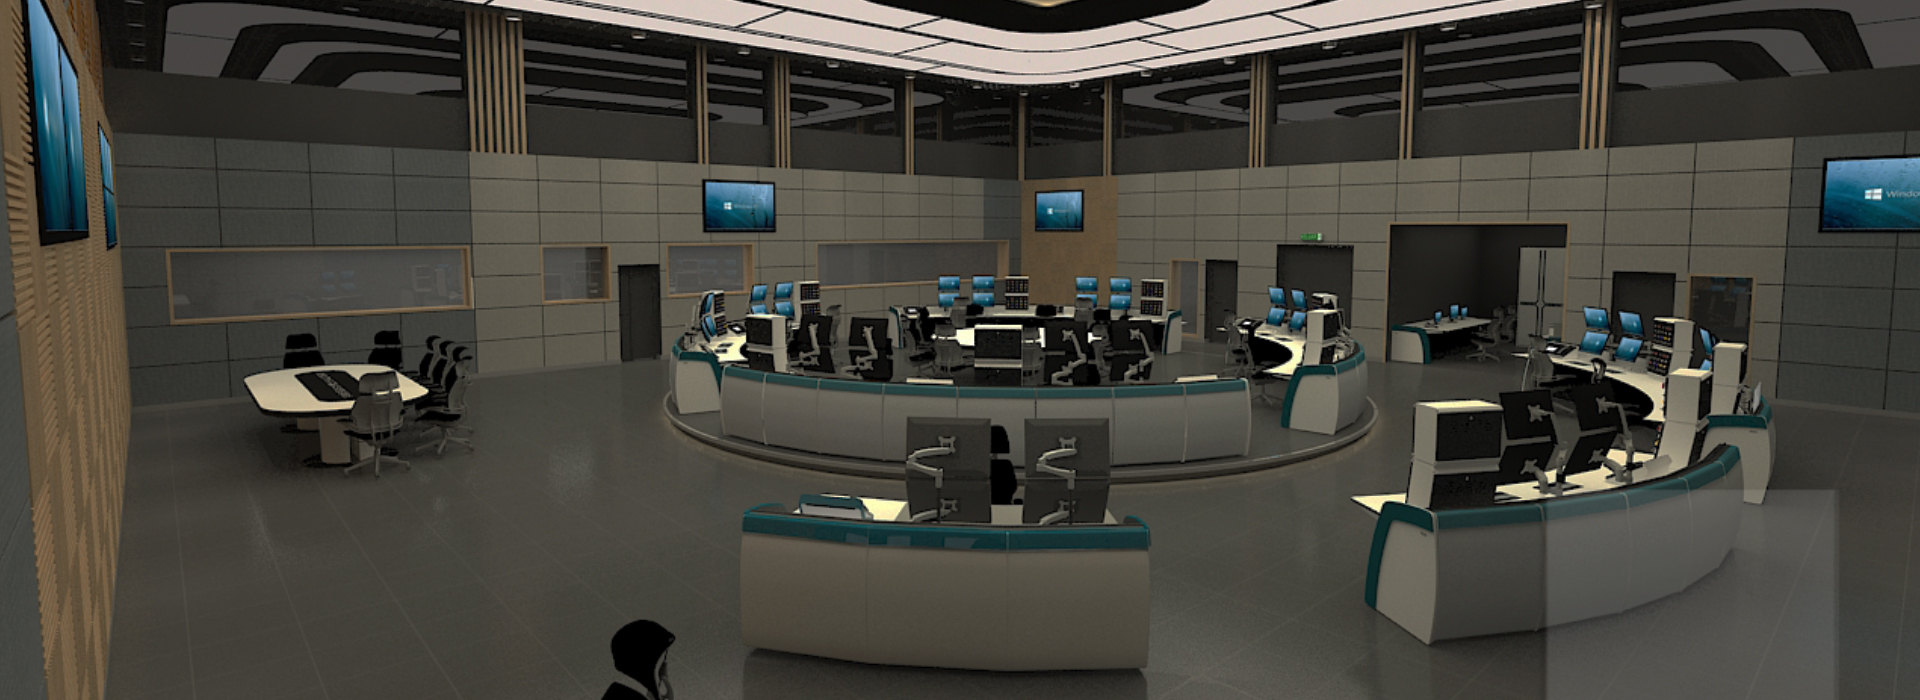 5 BEST OFFICE AUTOMATION SYSTEMS